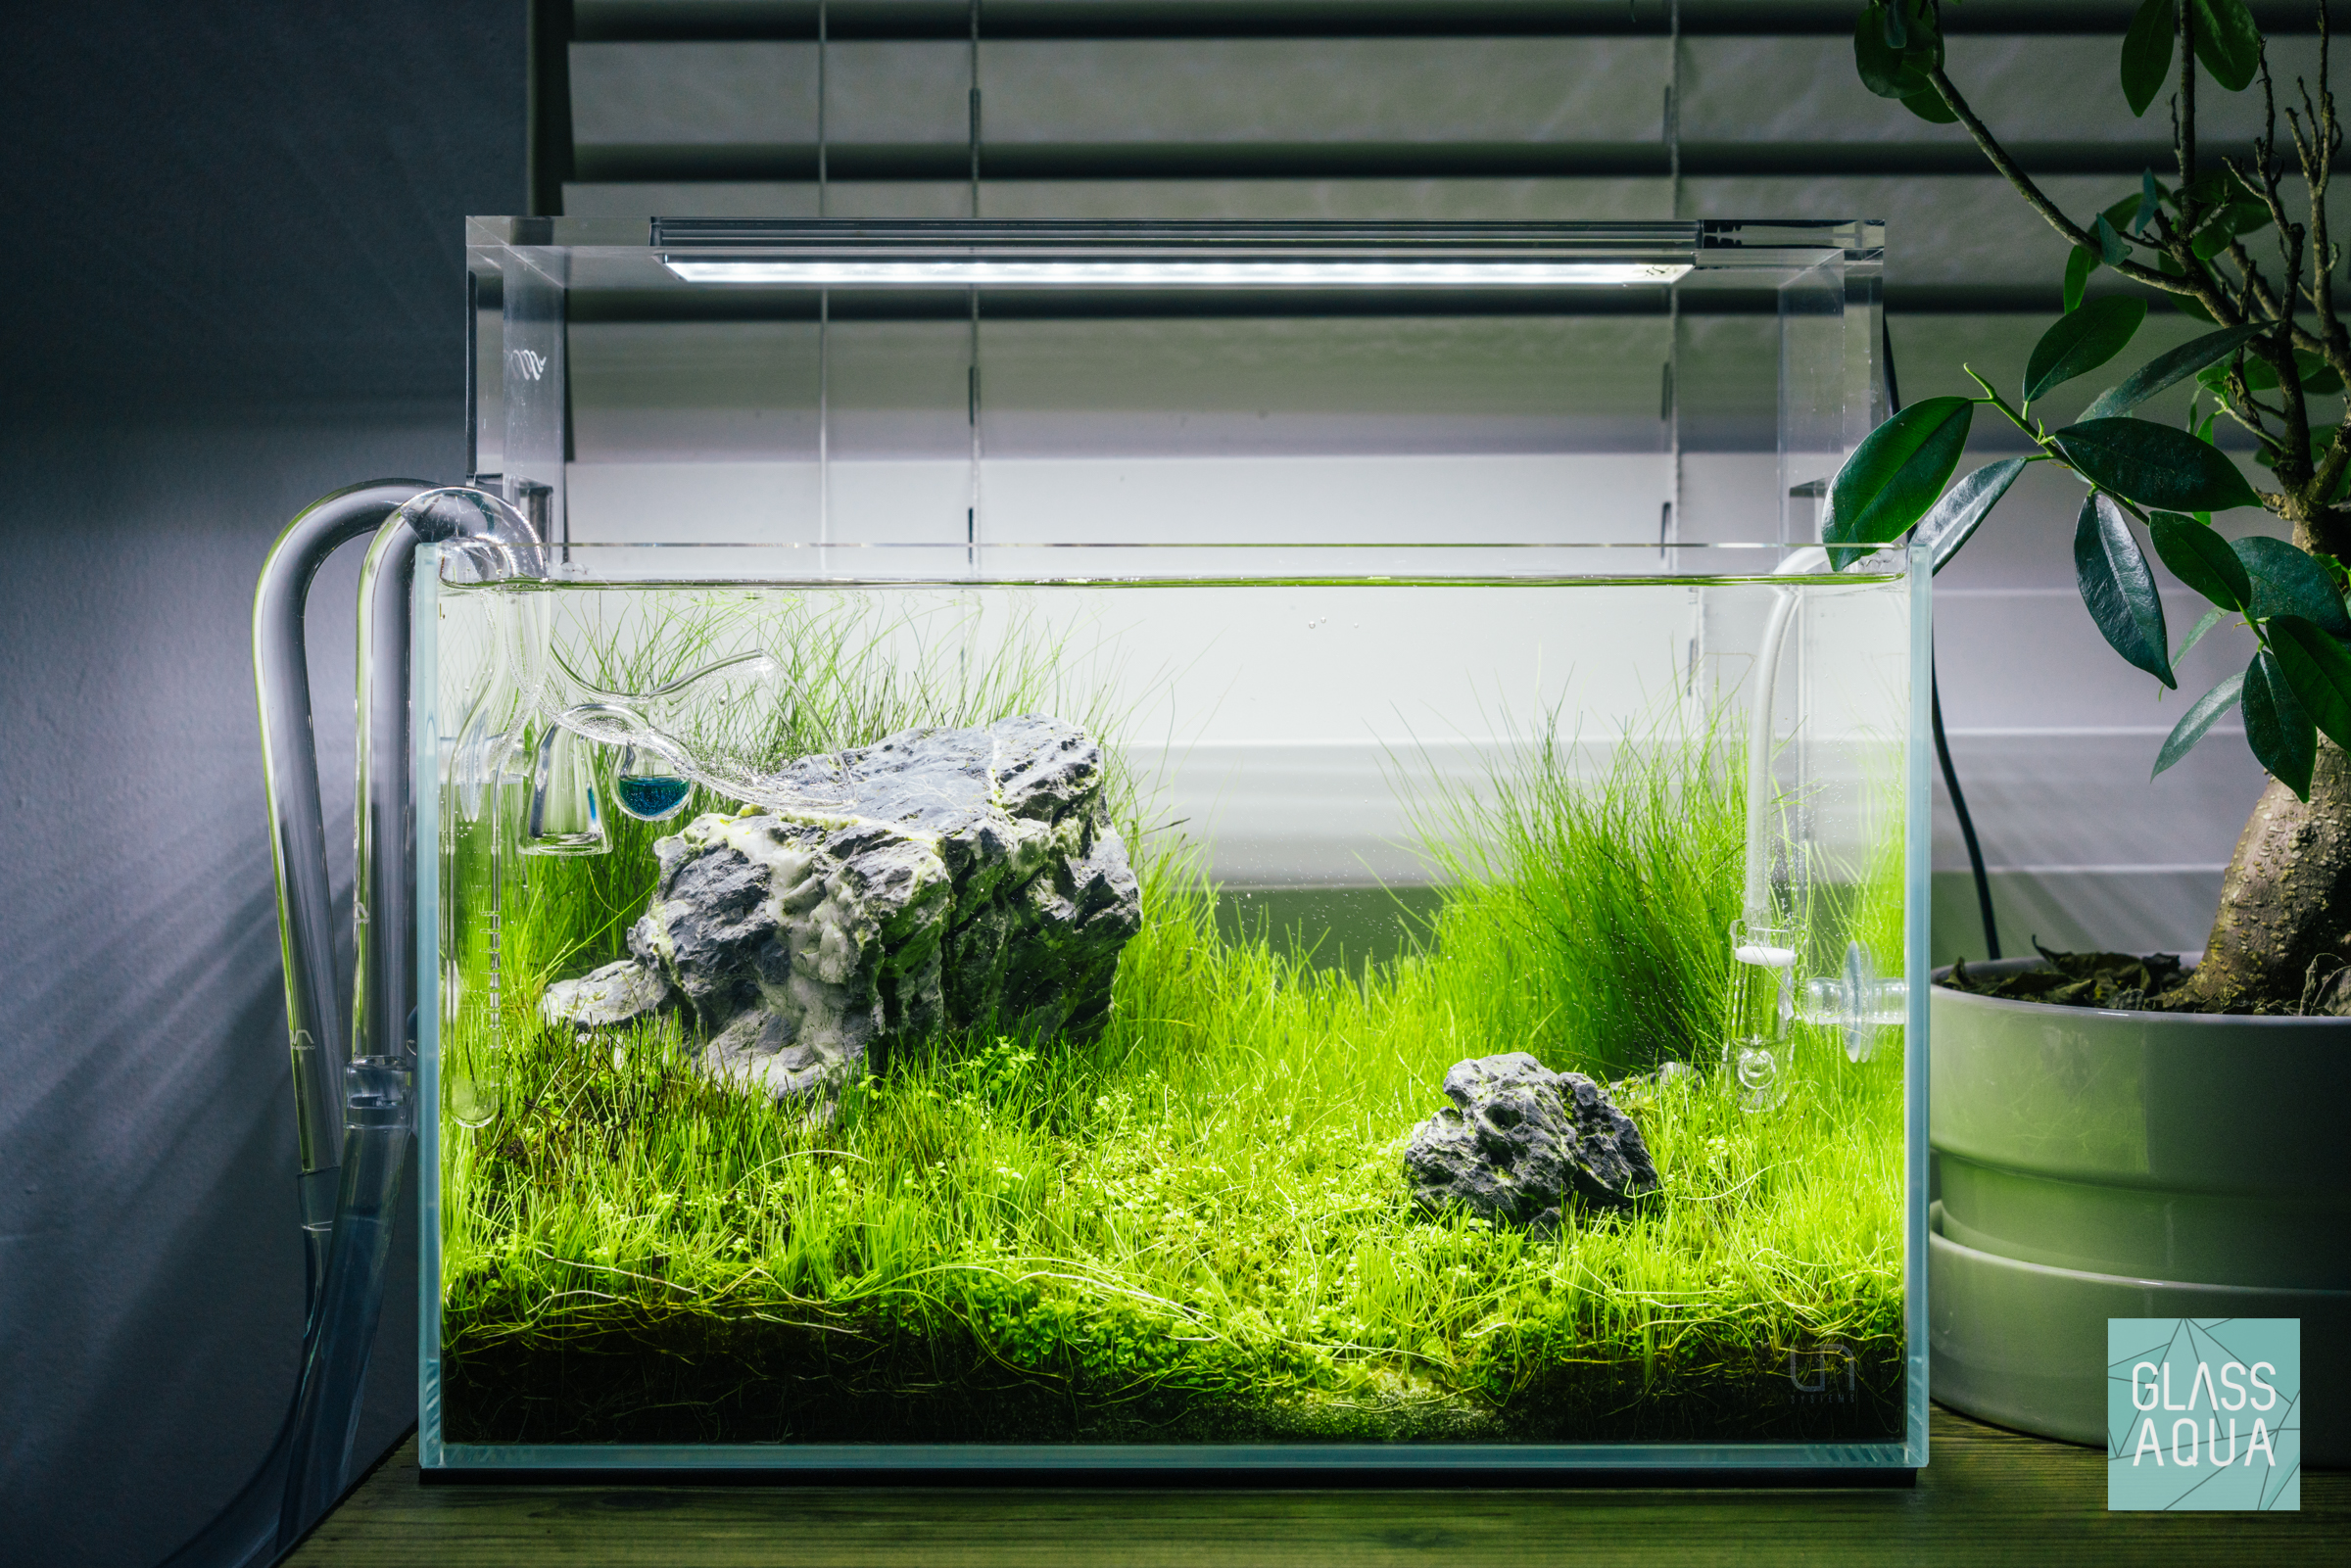 glass aqua planted tank nano glass aqua